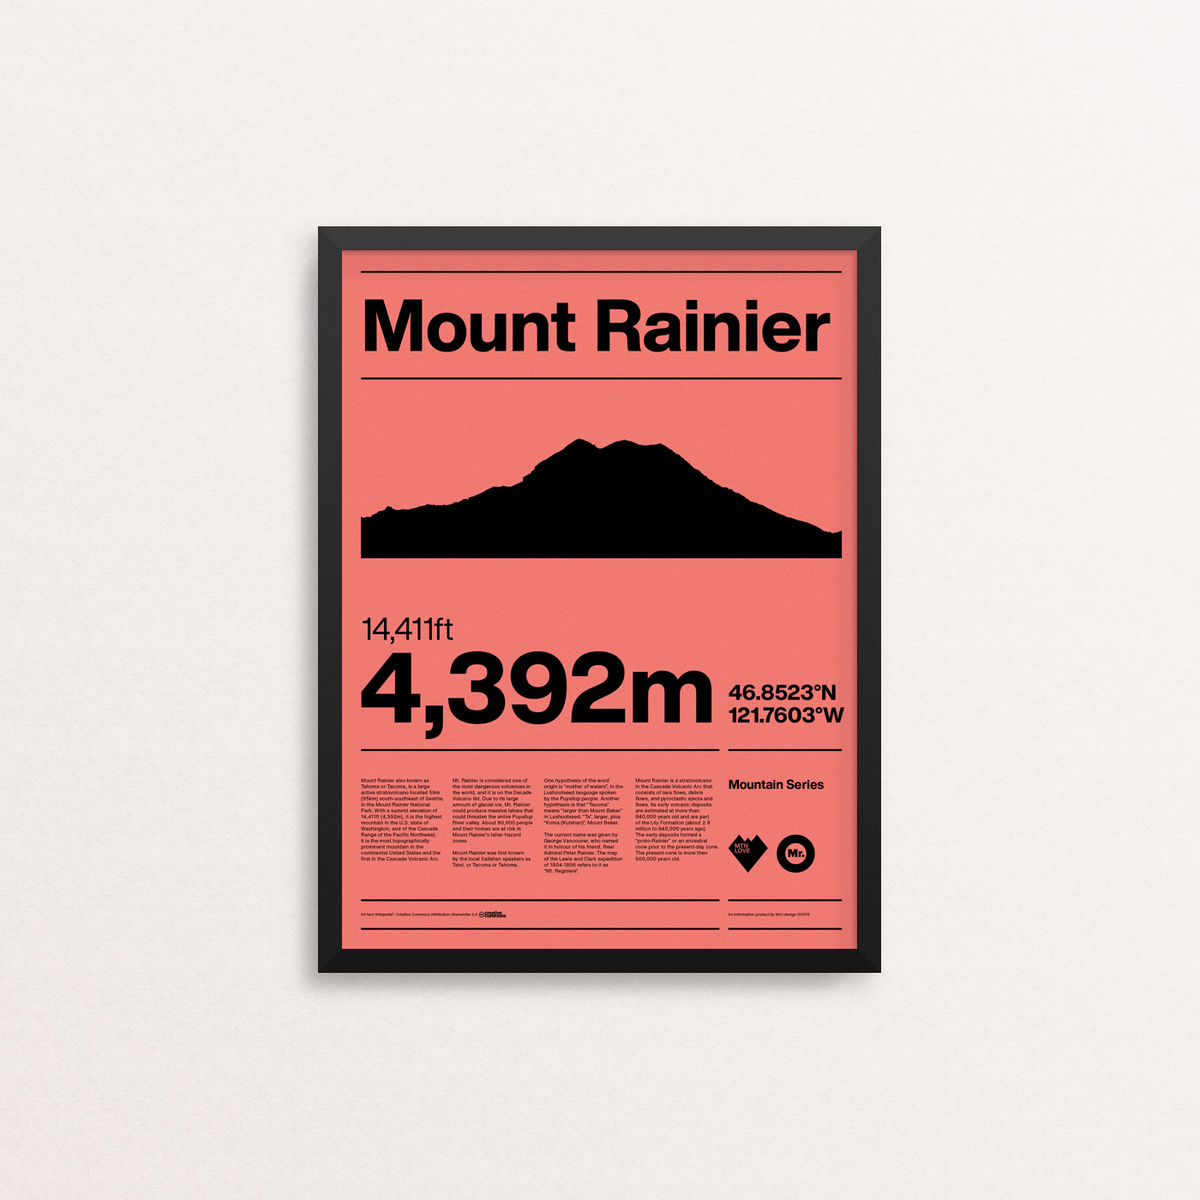 MTN Love - Mount Rainier - product image